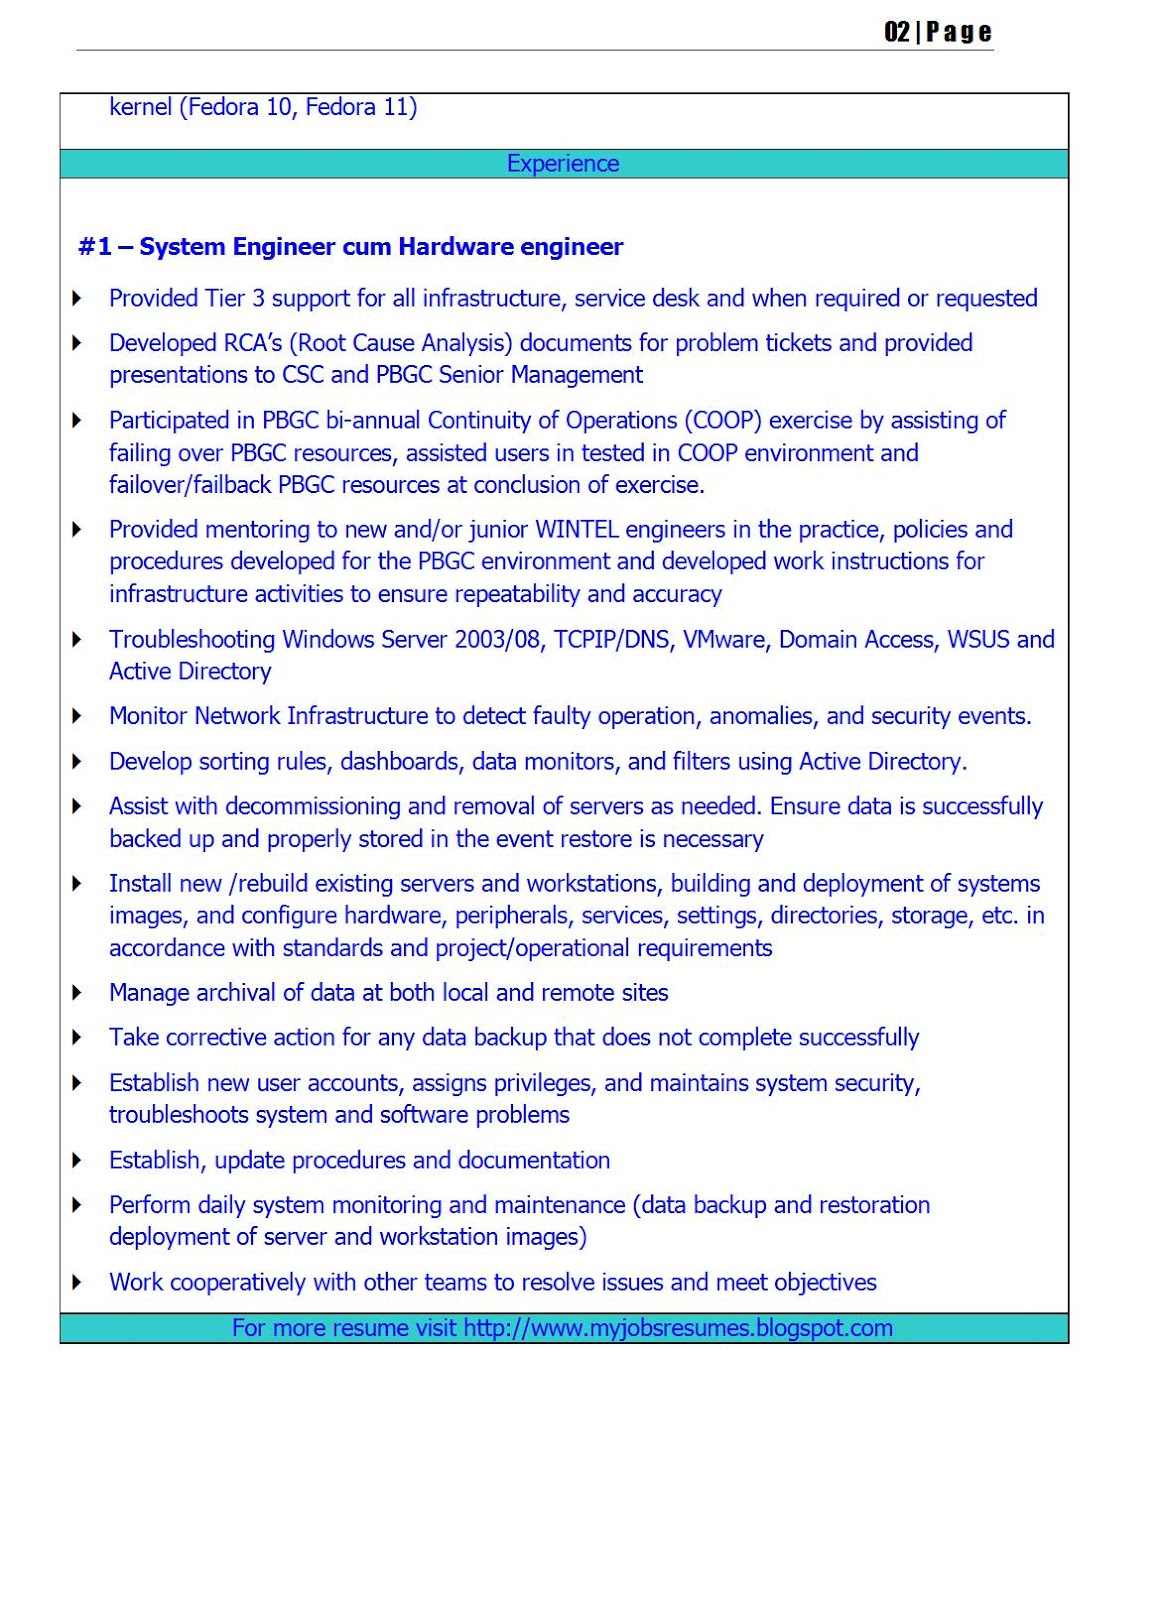 fresh jobs and free resume samples for jobs  cv for software engineering jobs